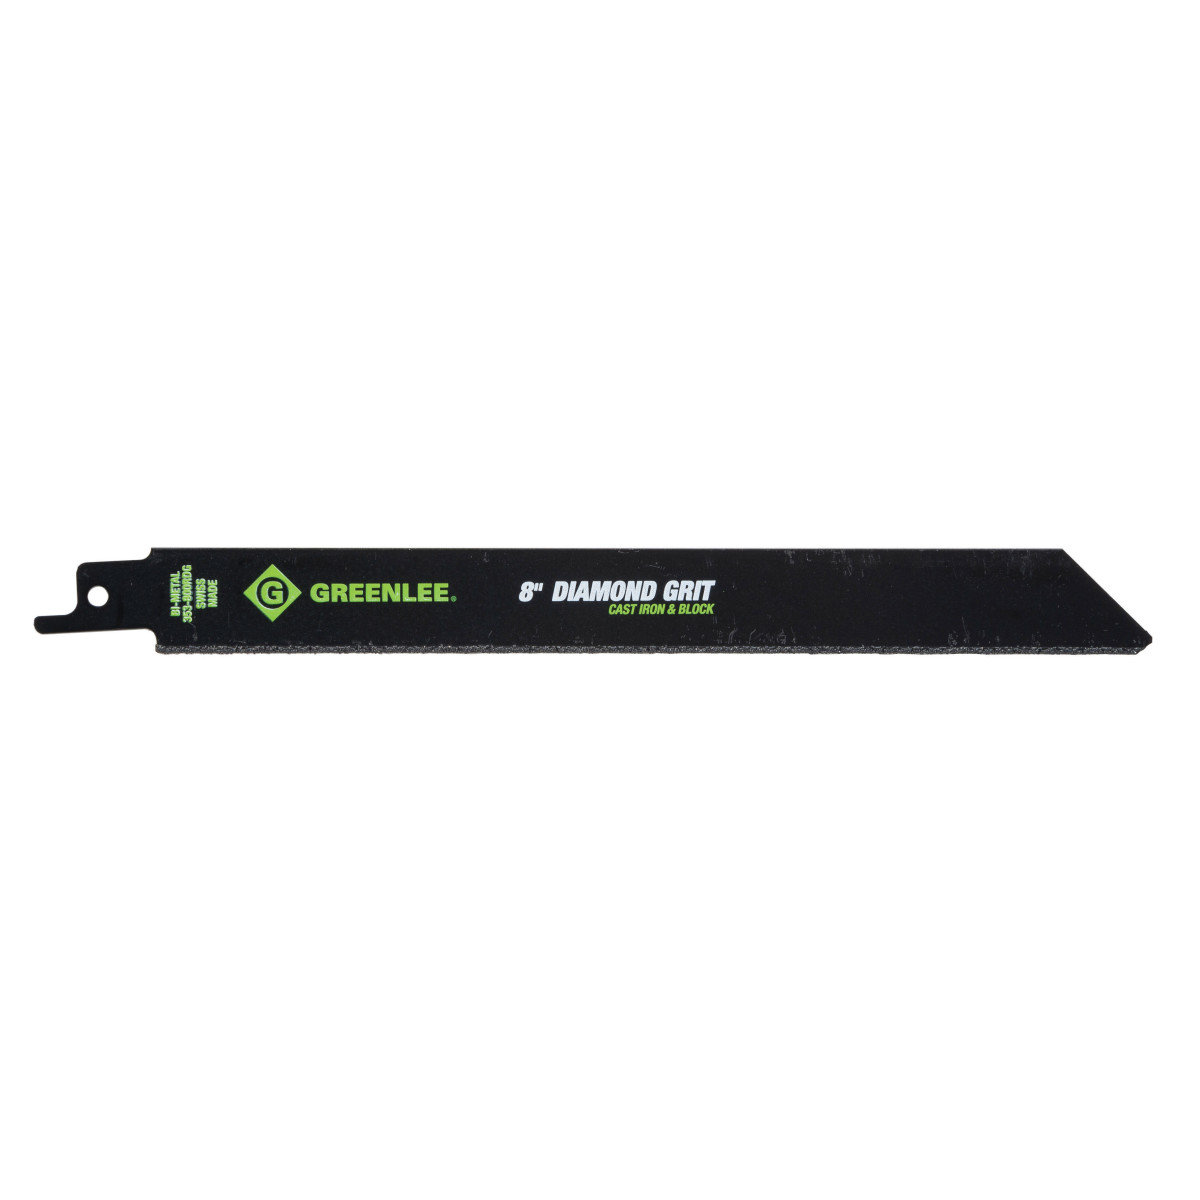 BLADE PKG, RECIP-8 X 3/4 DIAMOND